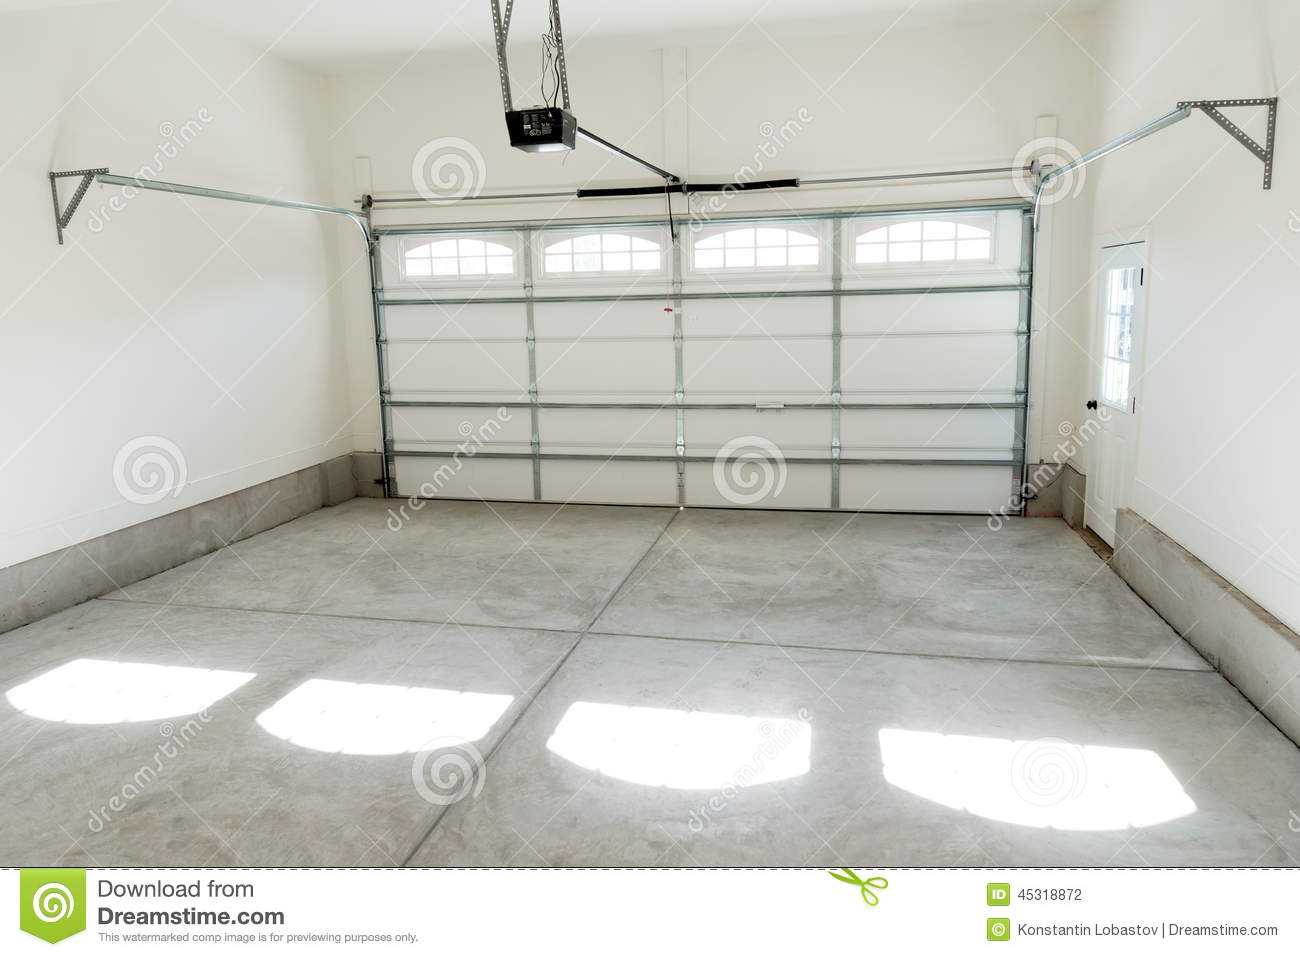 Program Car Garage Door Opener >> Two Car Garage Interior Stock Photo - Image: 45318872